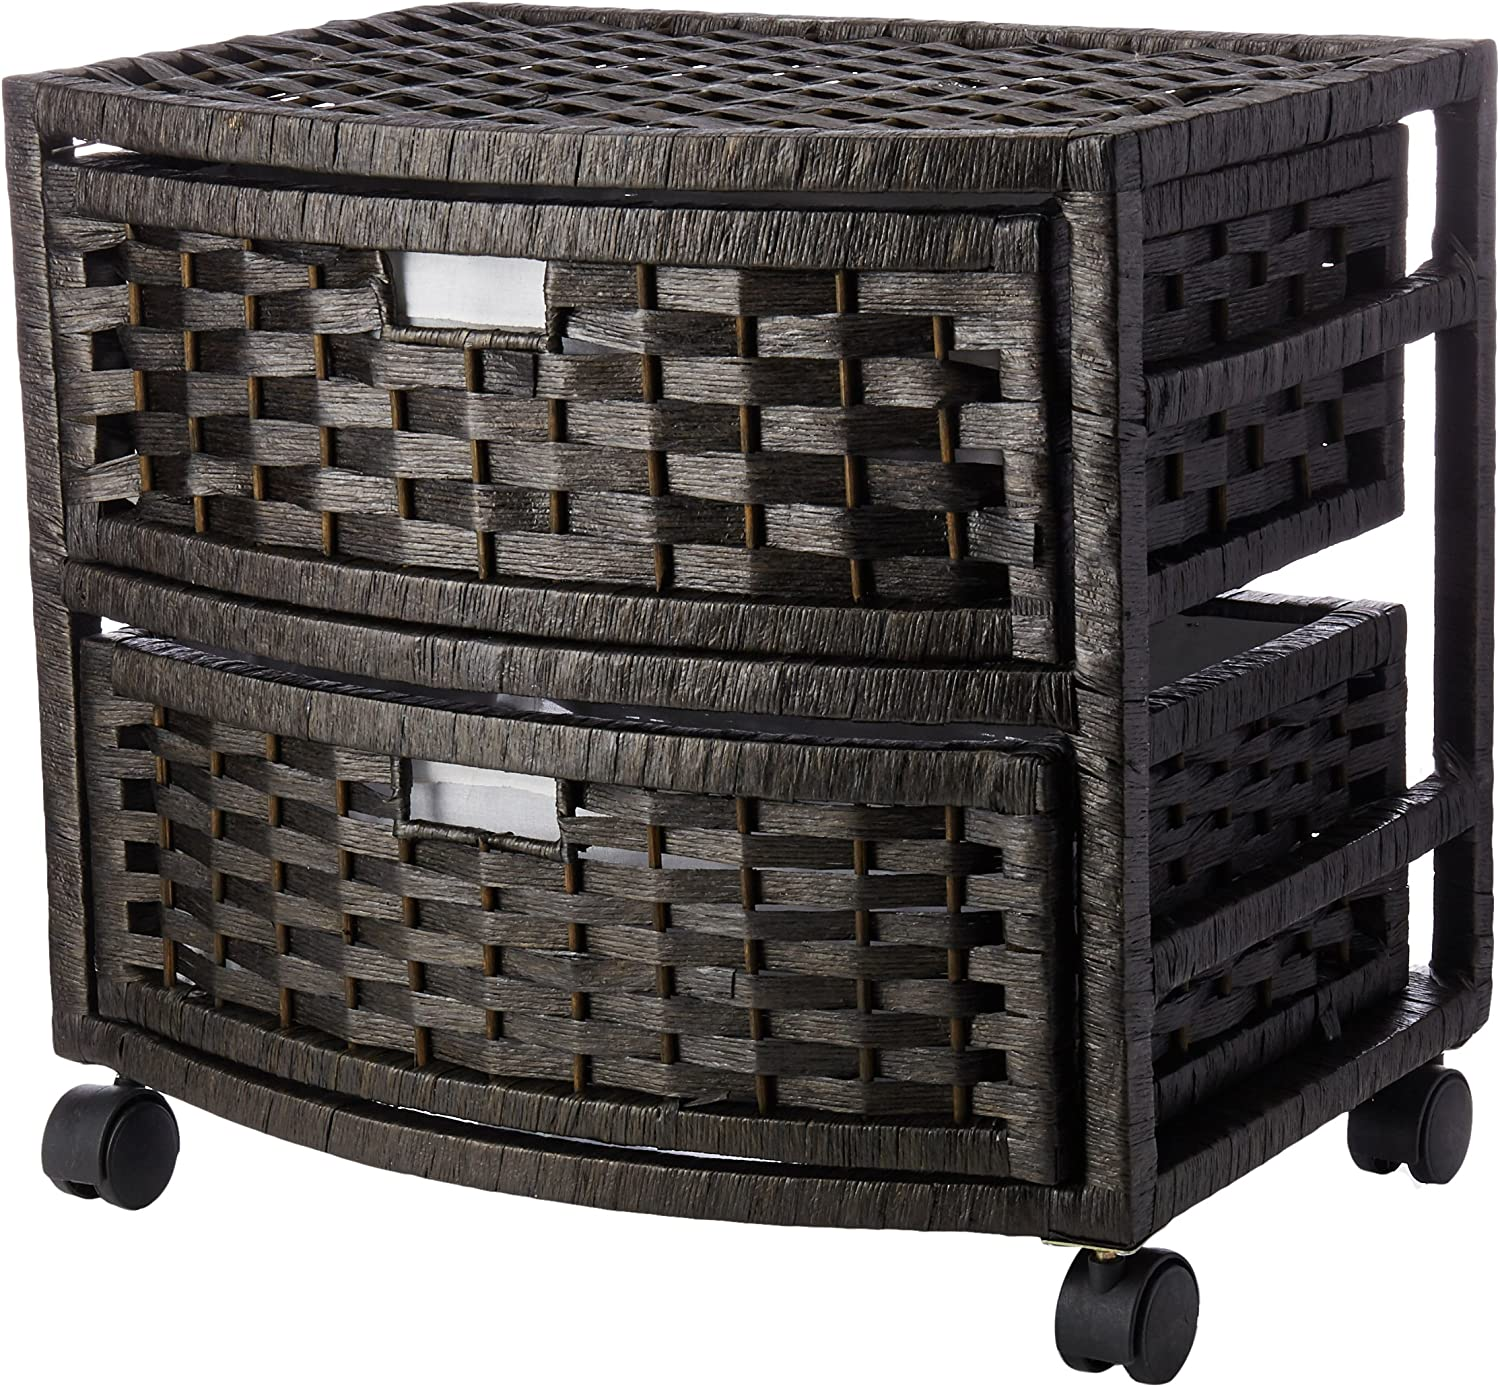 Oriental Furniture 16  Natural Fiber Occasional Chest of Drawers - Black